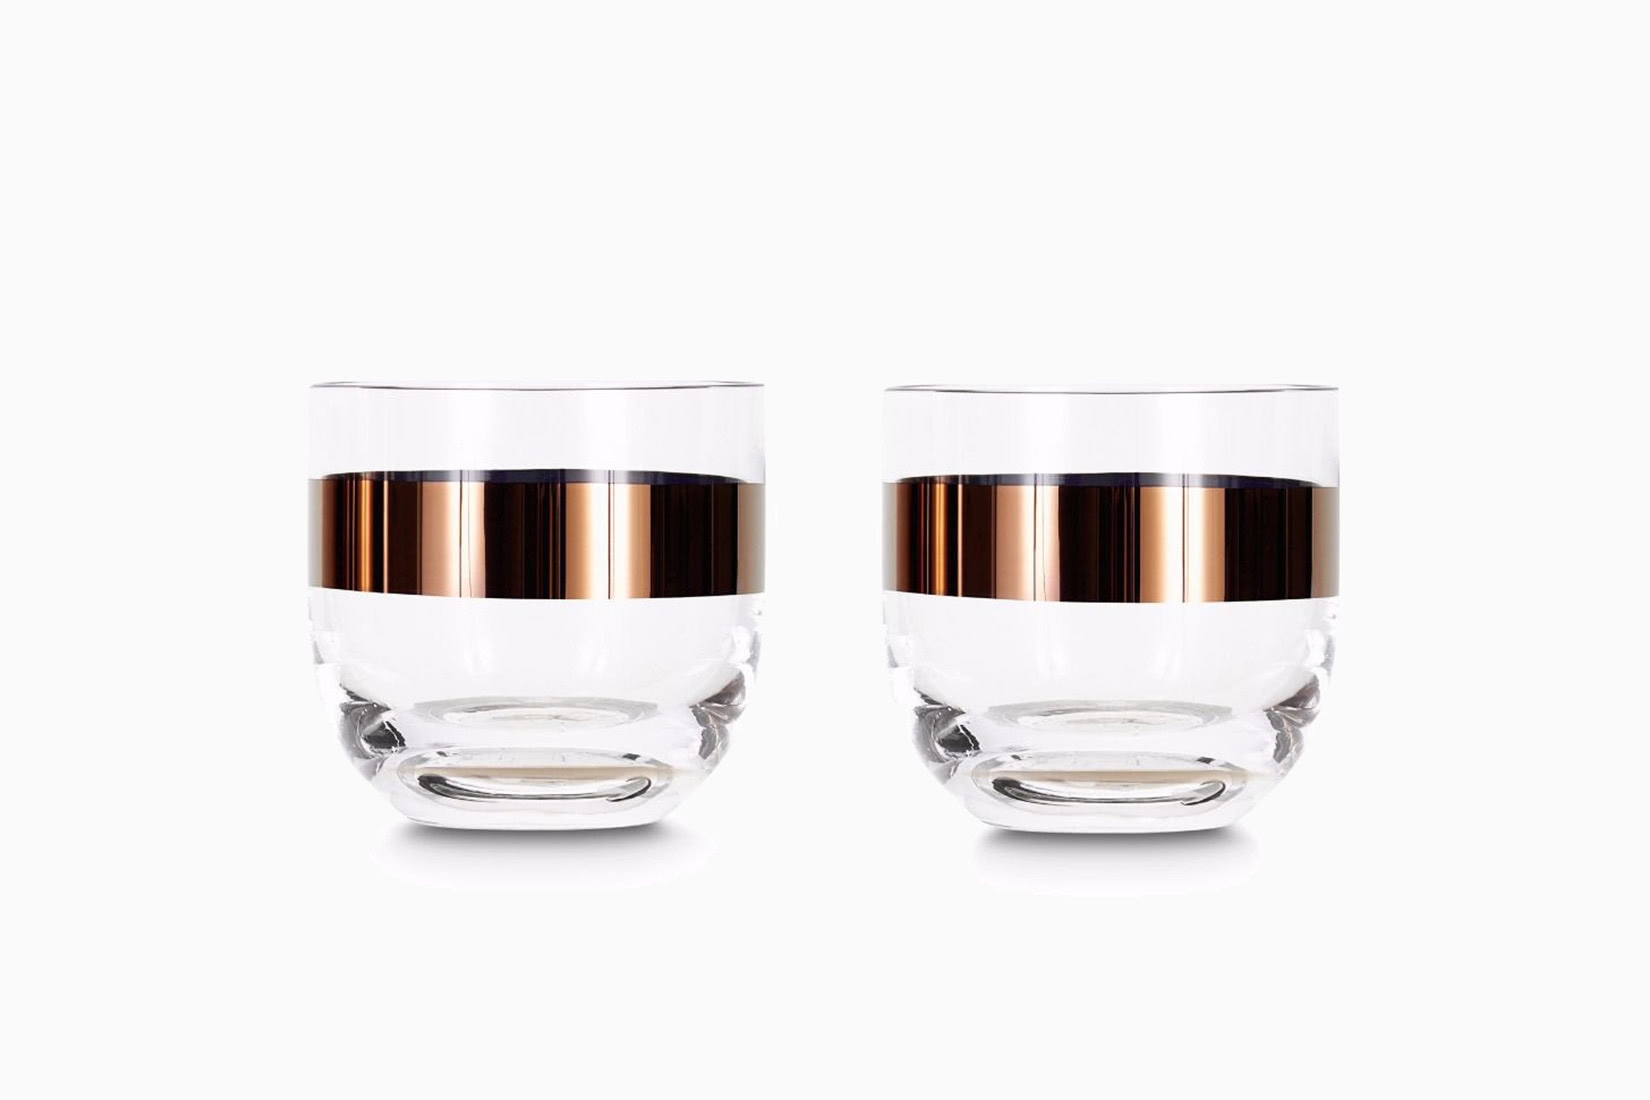 best whisky glass tom dixon tank - Luxe Digital